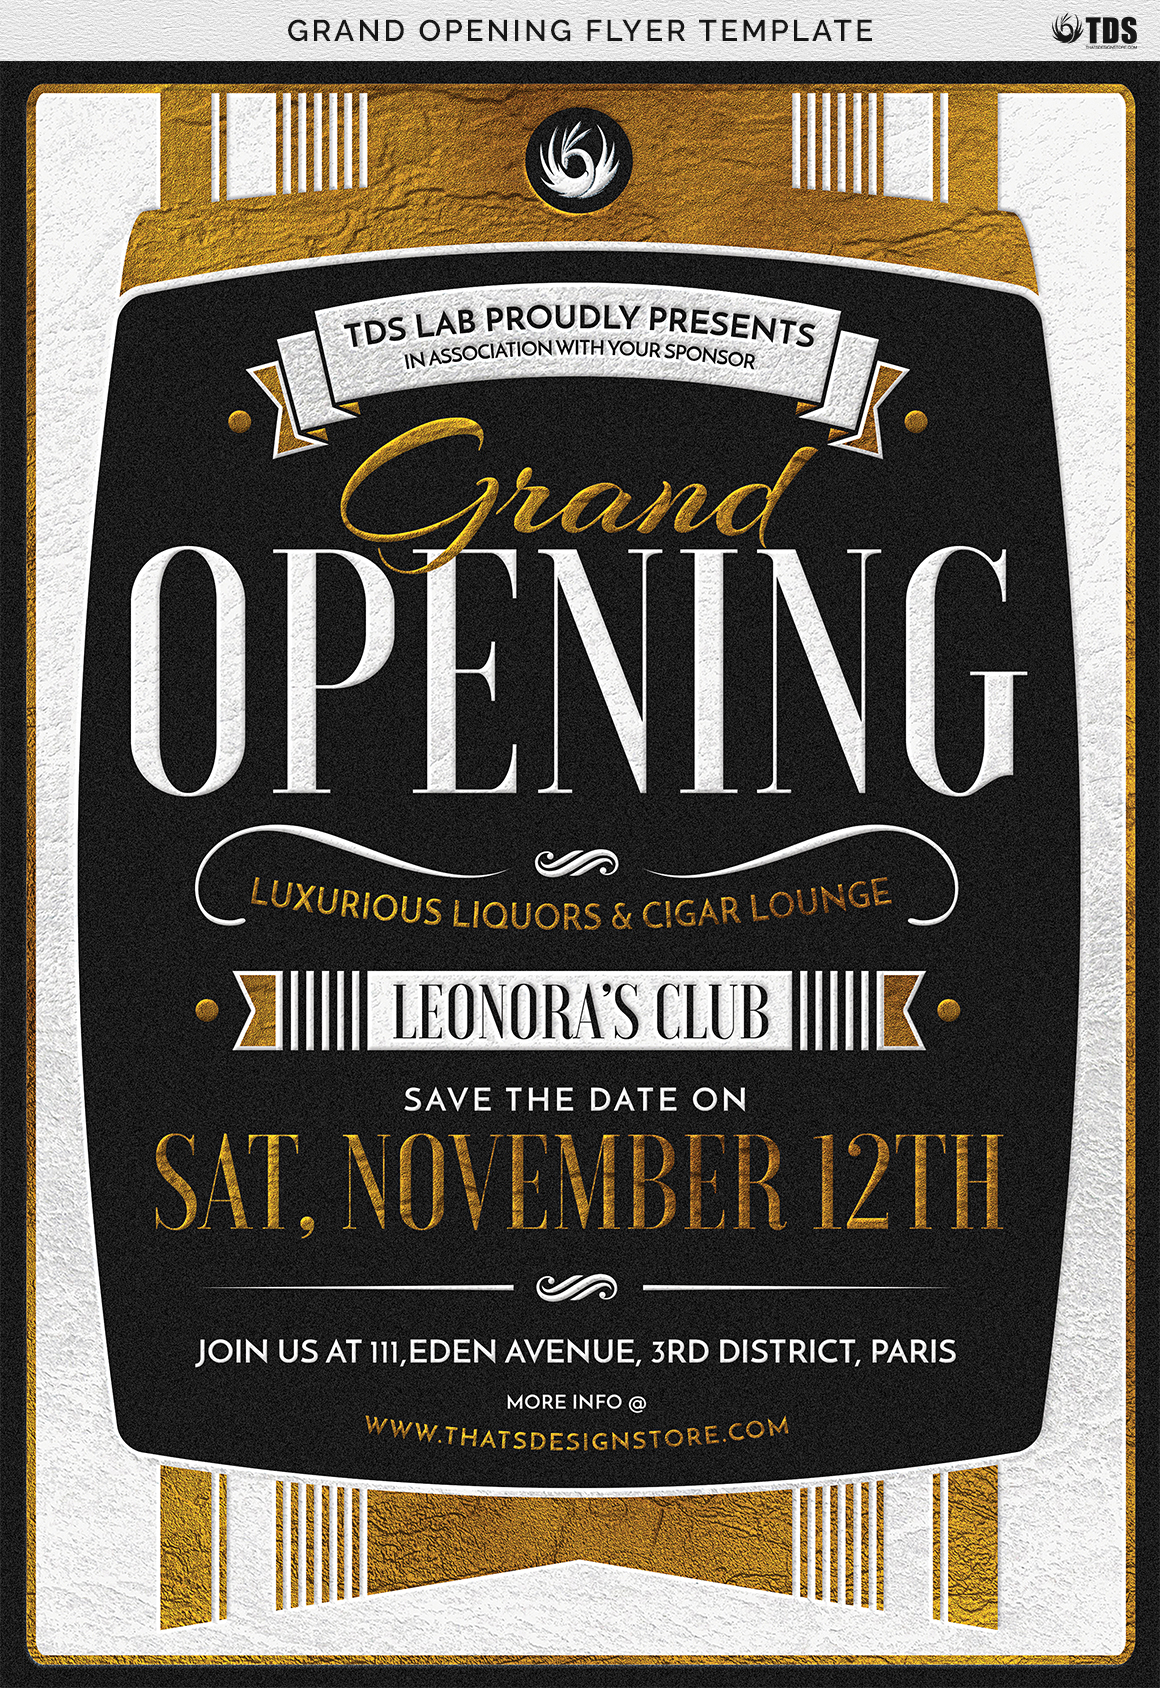 Grand Opening Flyer Template example image 11